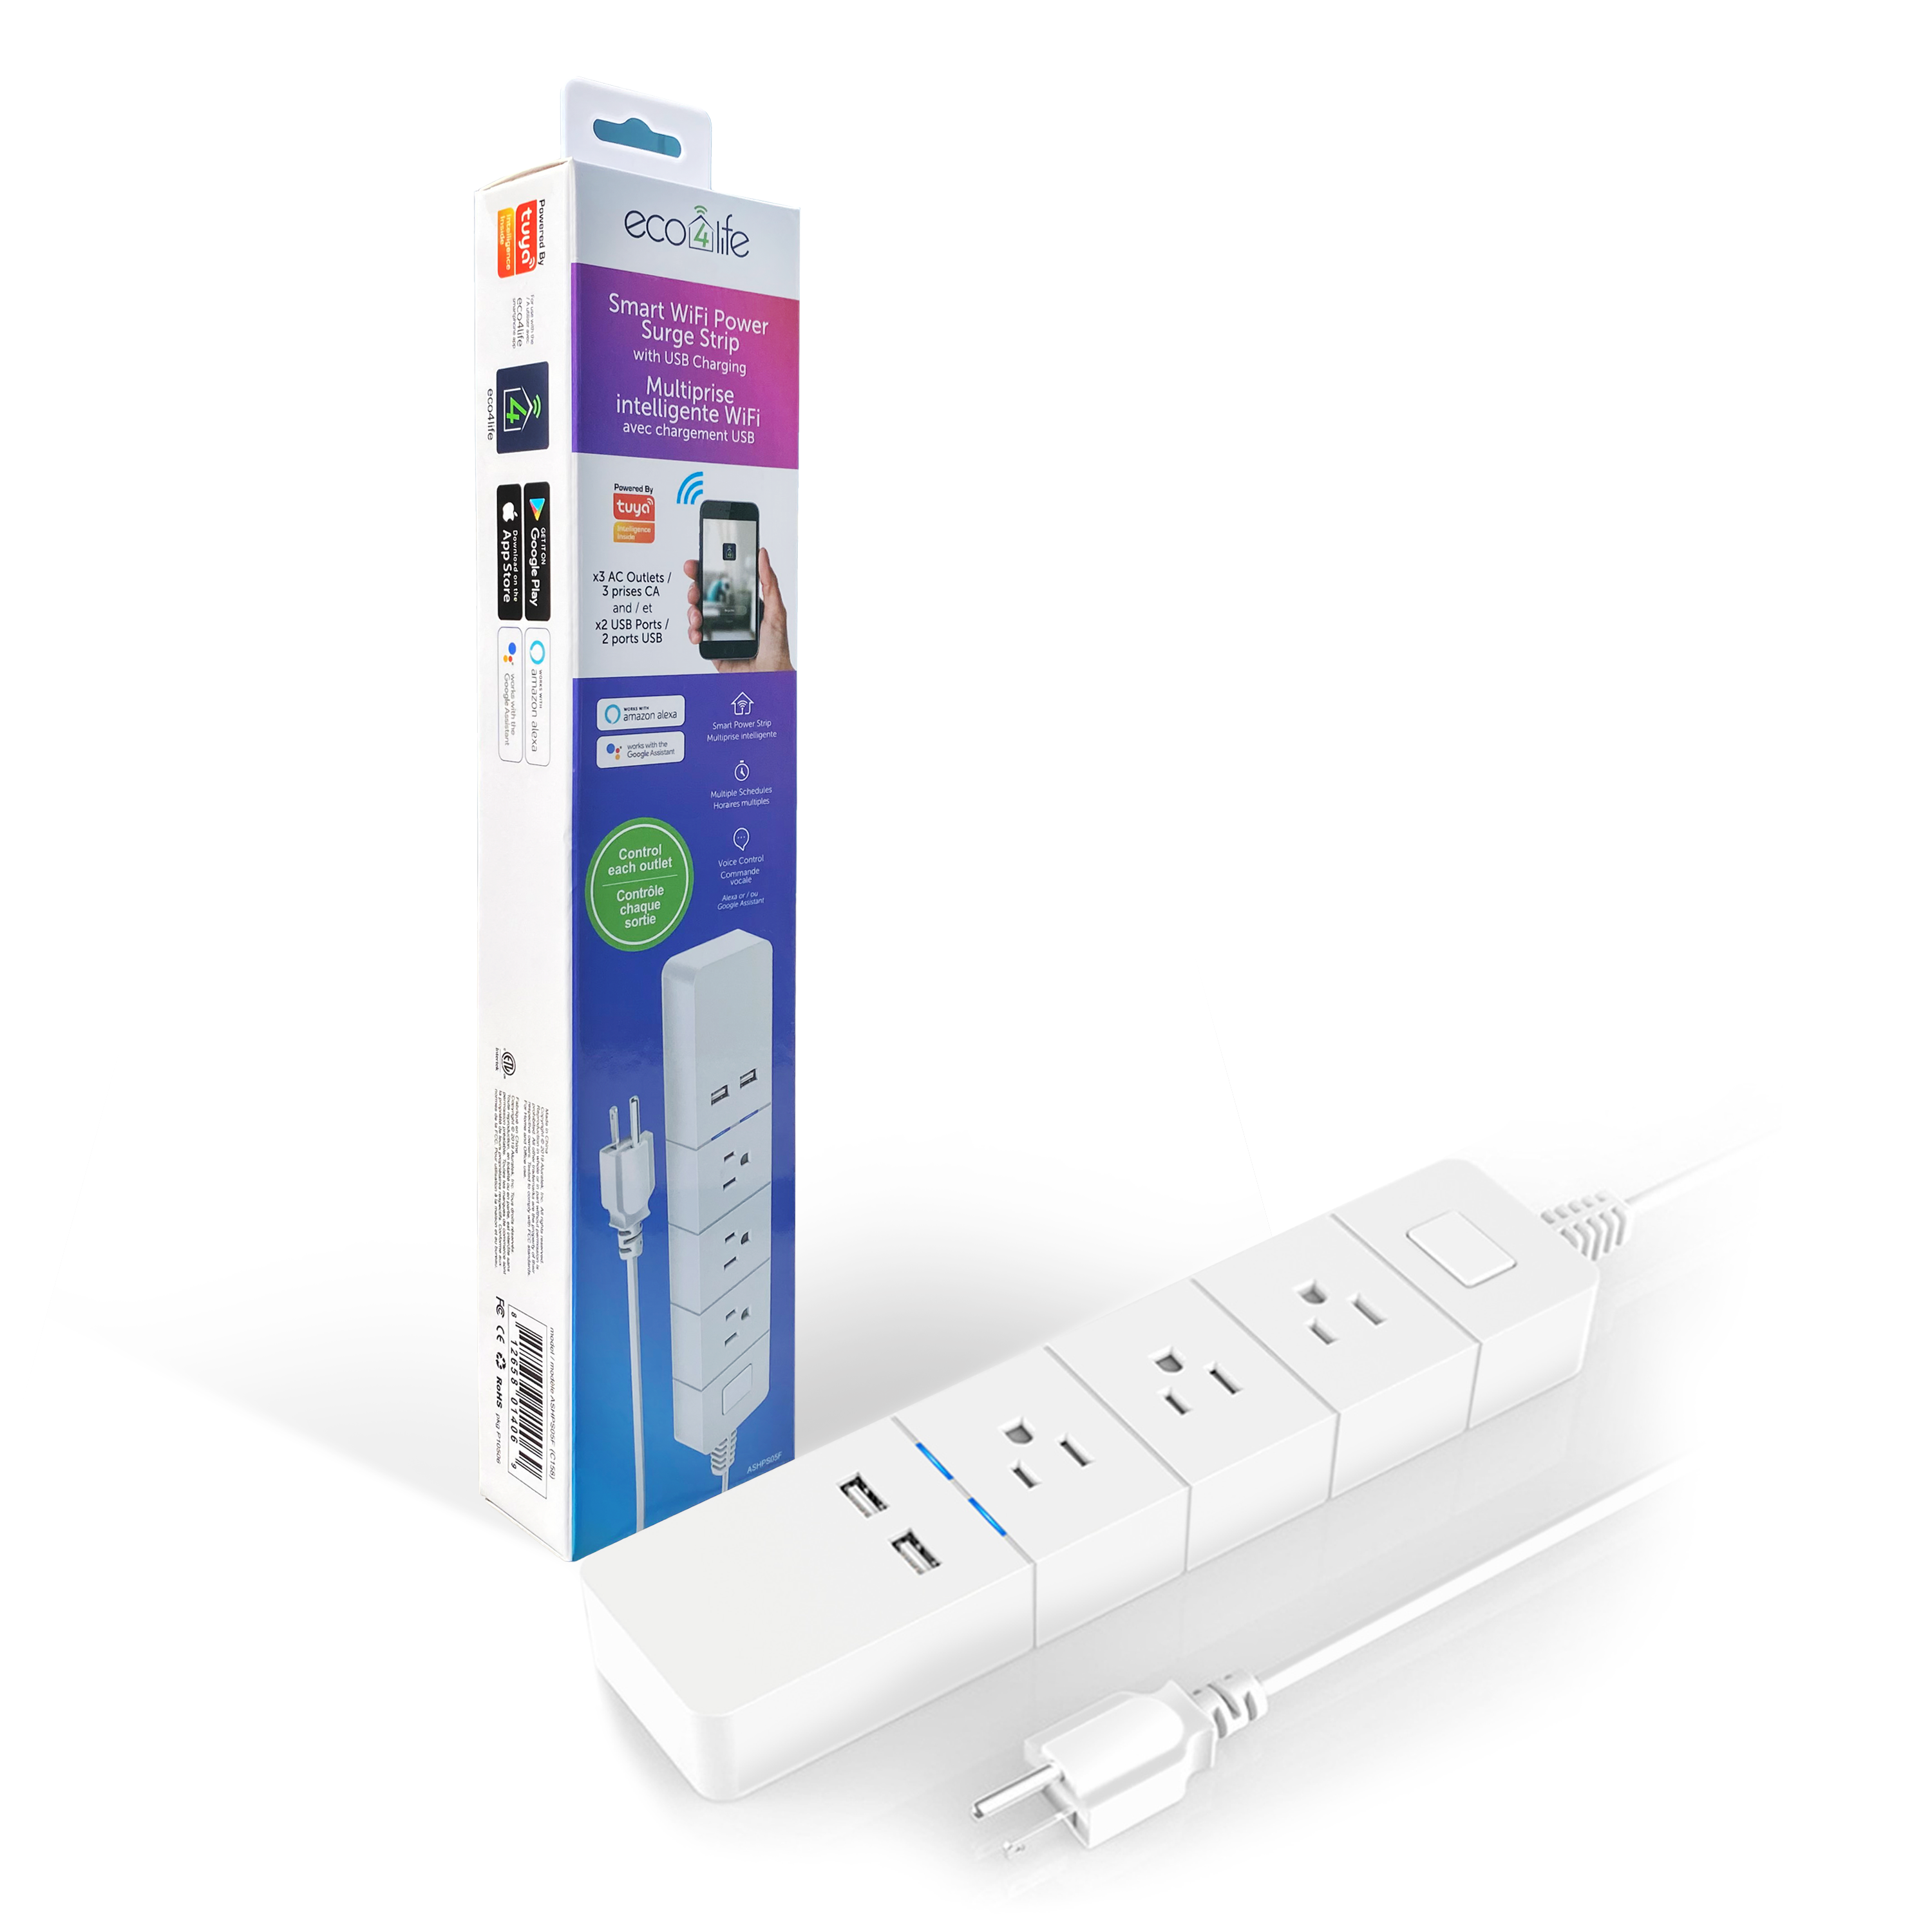 6 Piece Wi-Fi Smart Home Gift set - Limited Edition